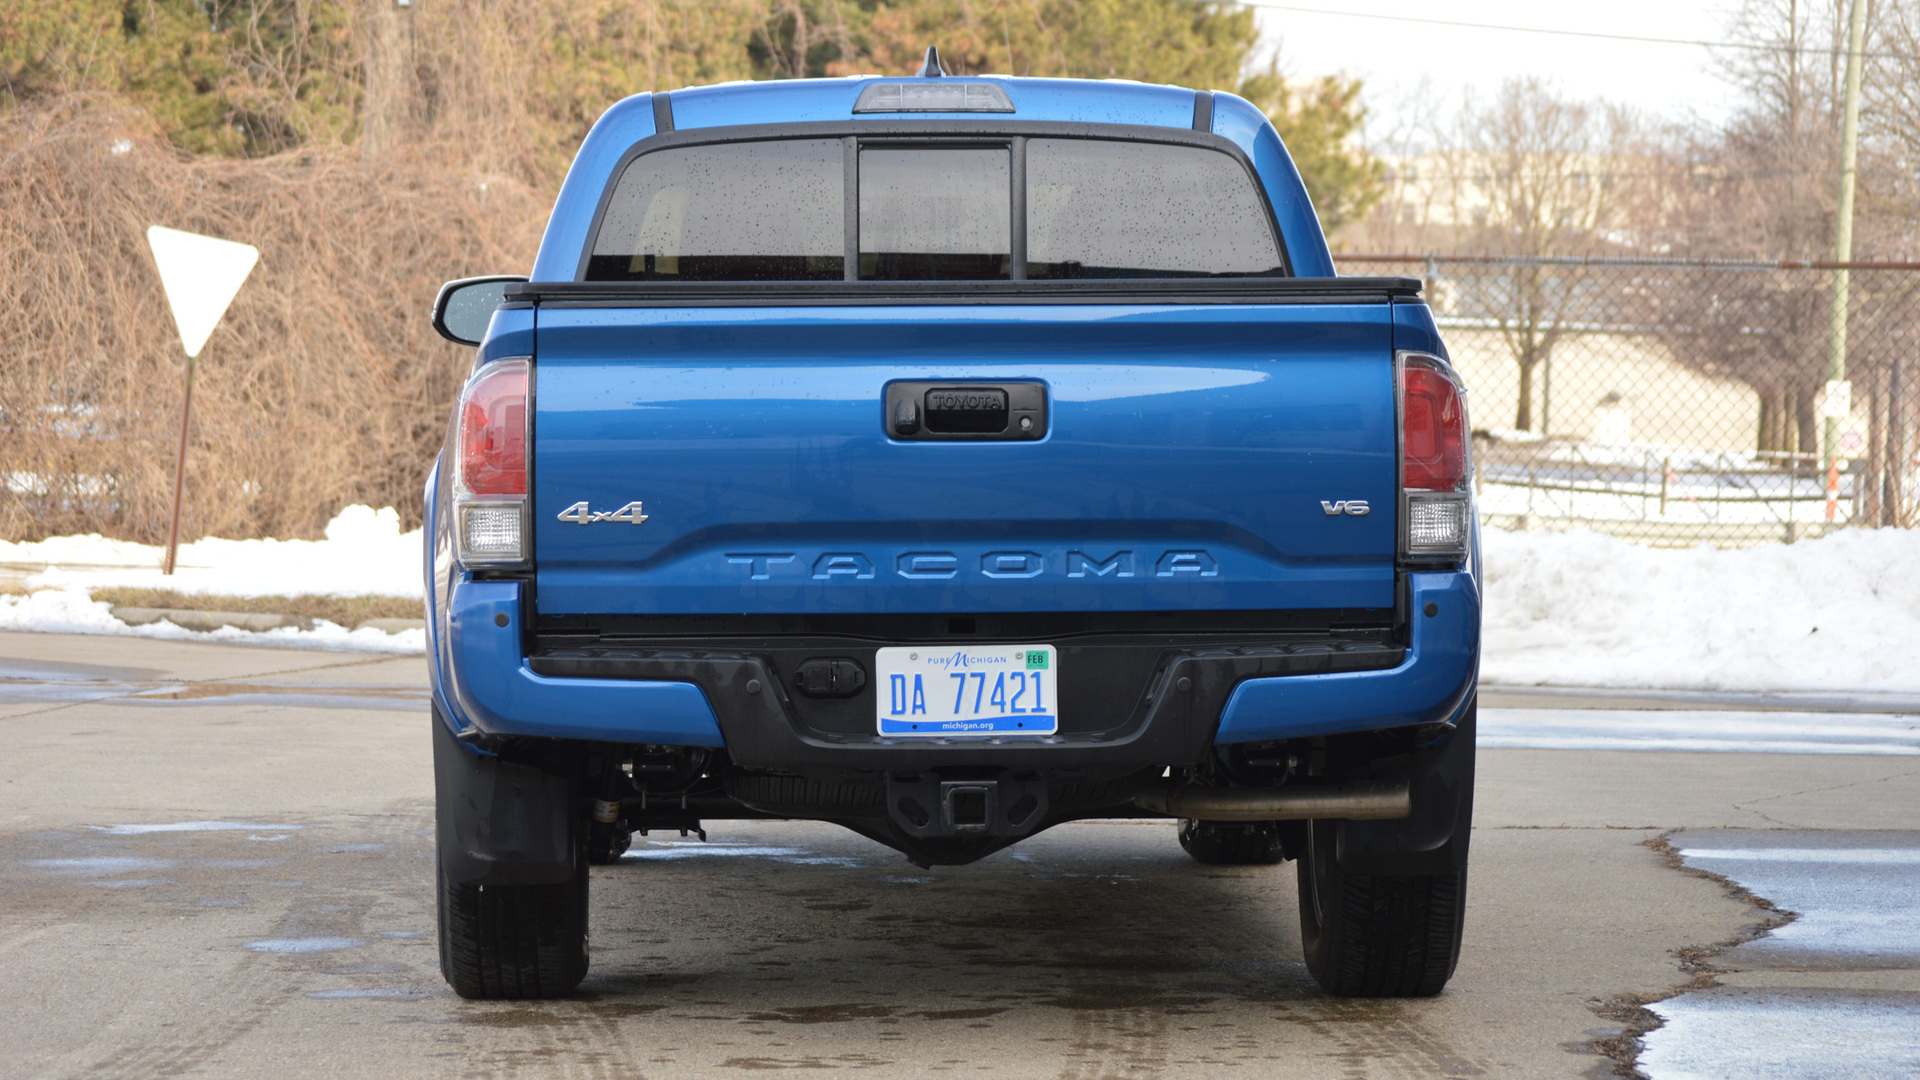 2016 Tacoma Towing Capacity >> Review: 2016 Toyota Tacoma | Motor1.com